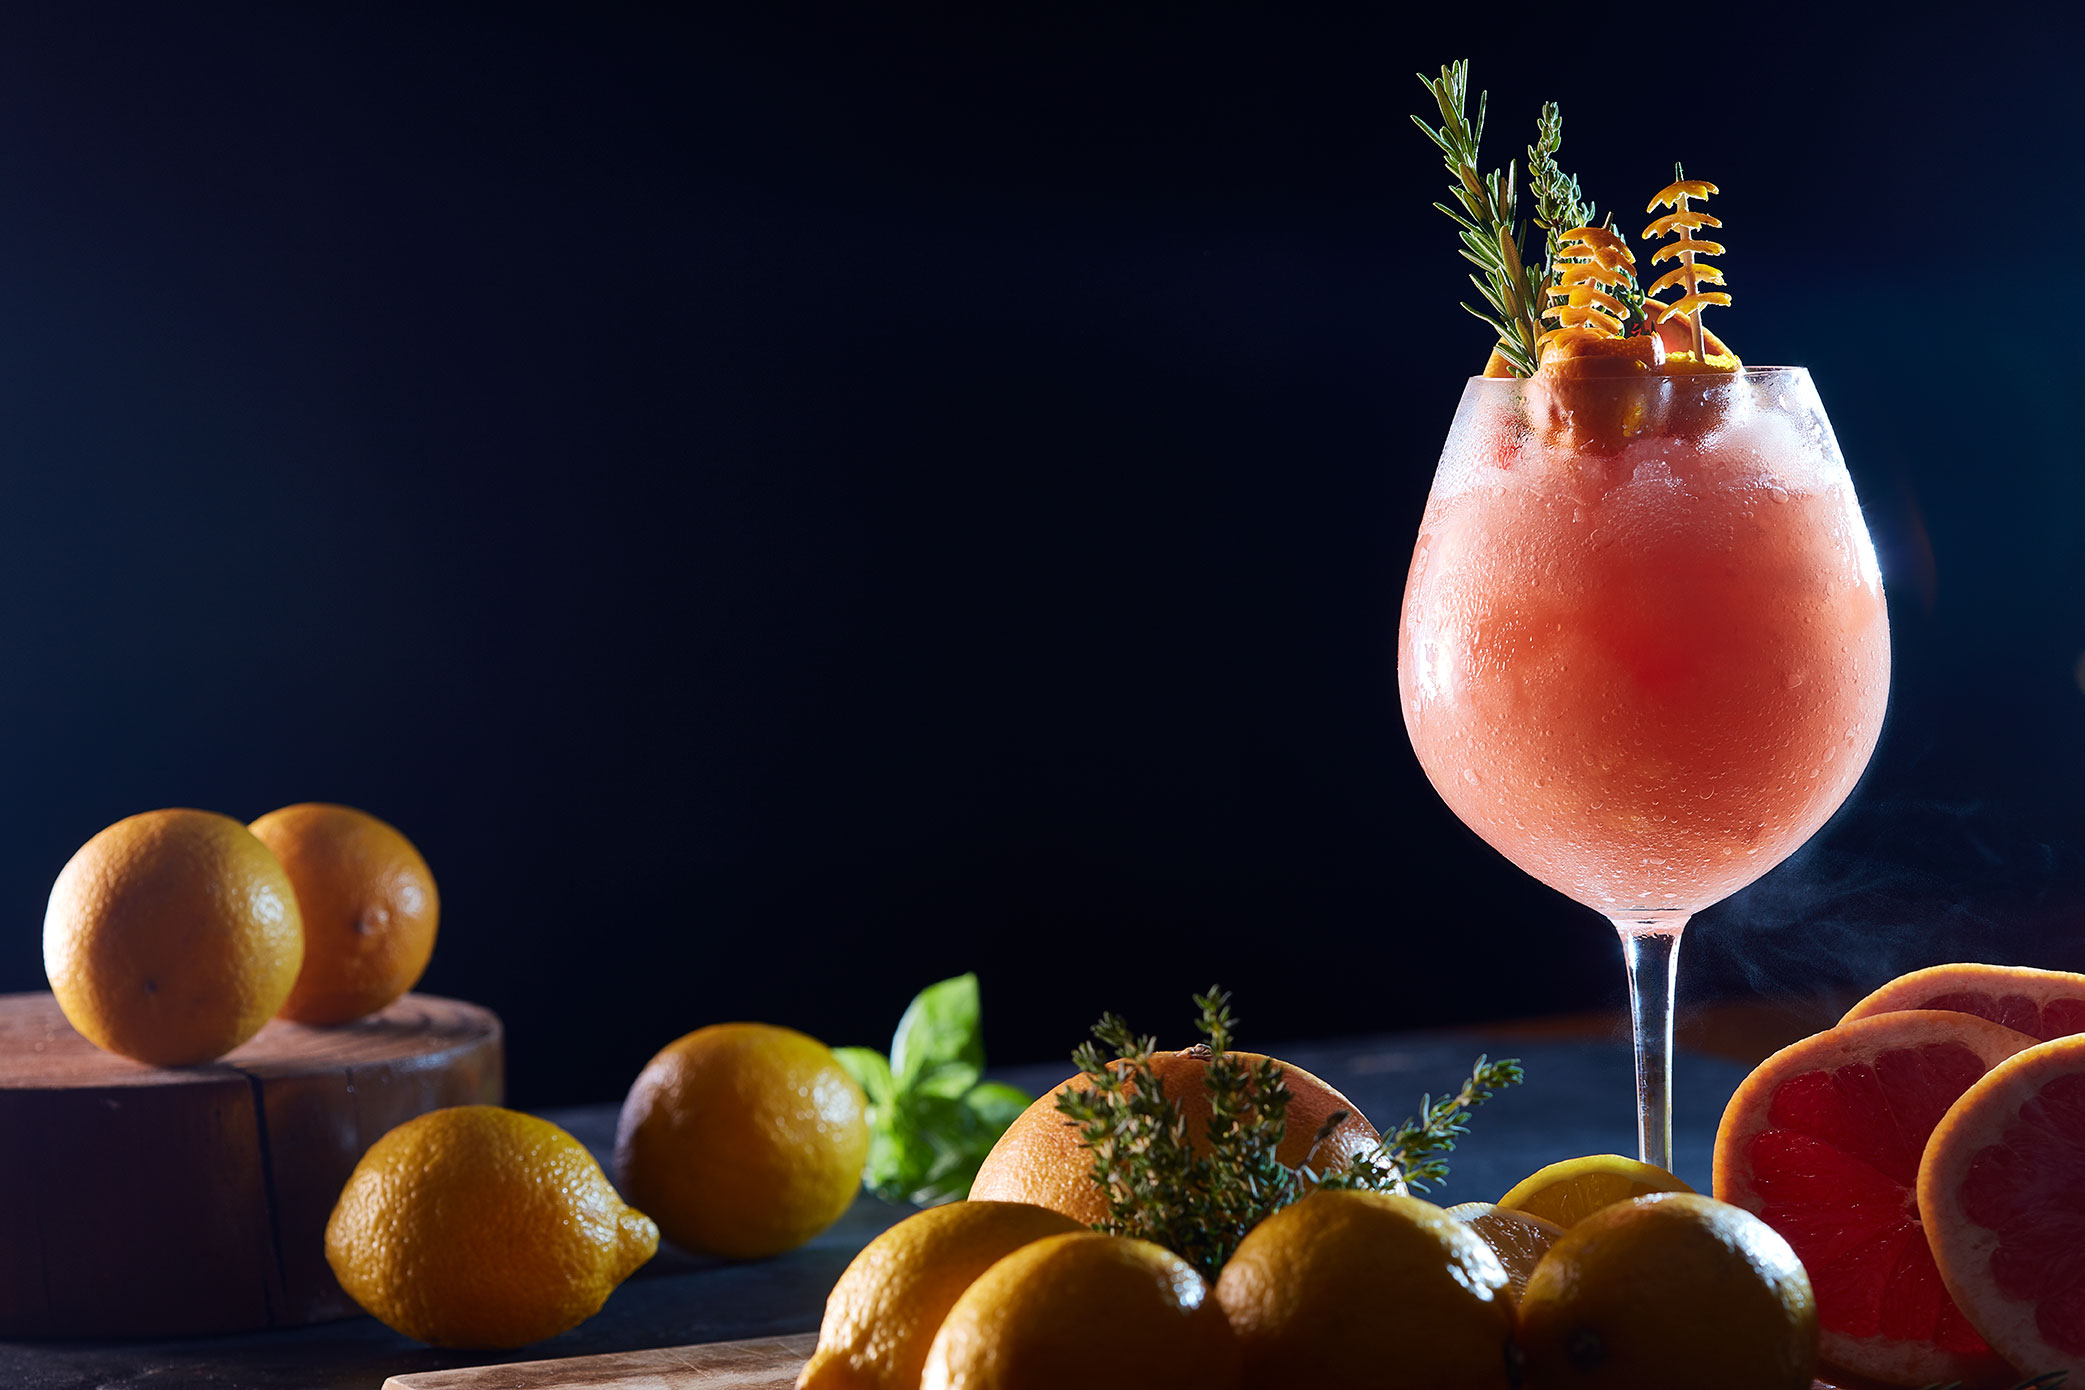 Cocktail-3-366.jpg